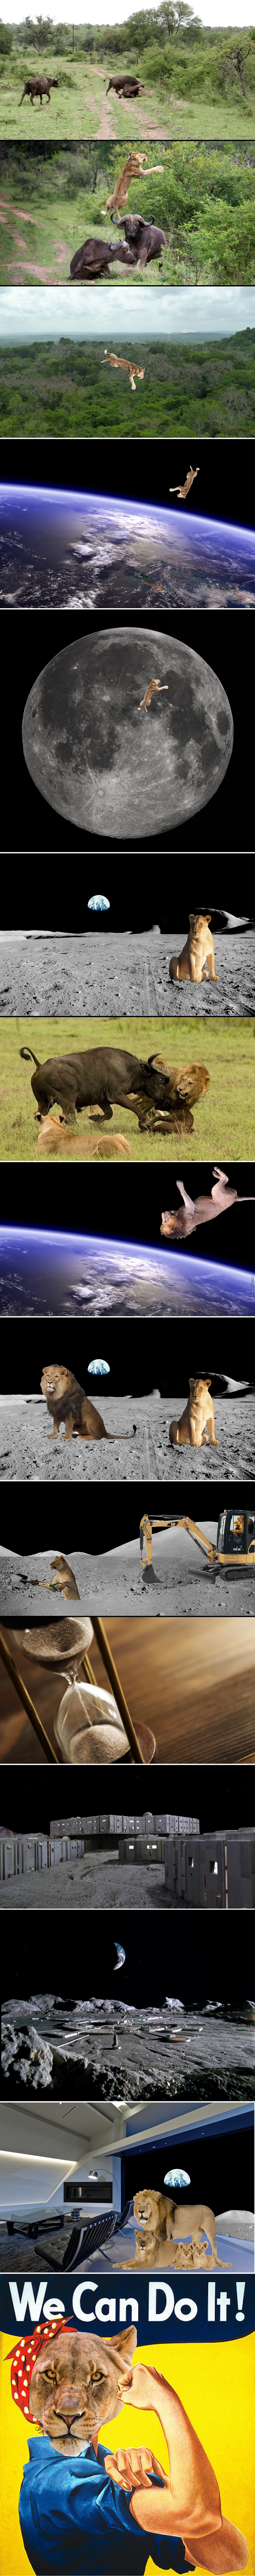 Lions On The Moon - A Poorly Photoshopped Story